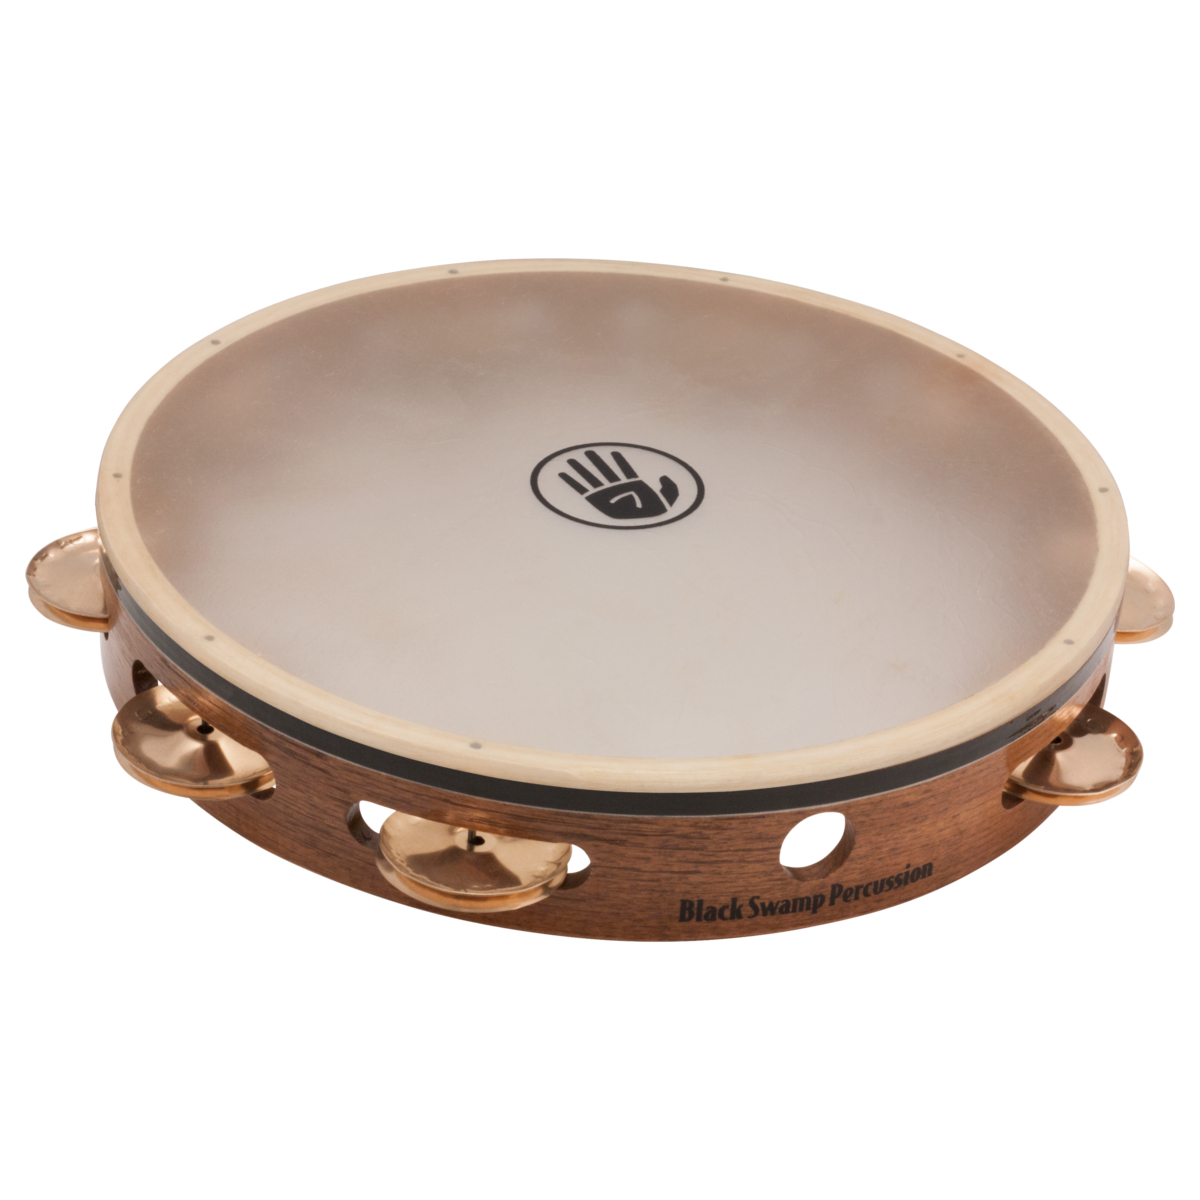 Black Swamp Percussion Tambourine TS4 Single Row Beryllium Copper